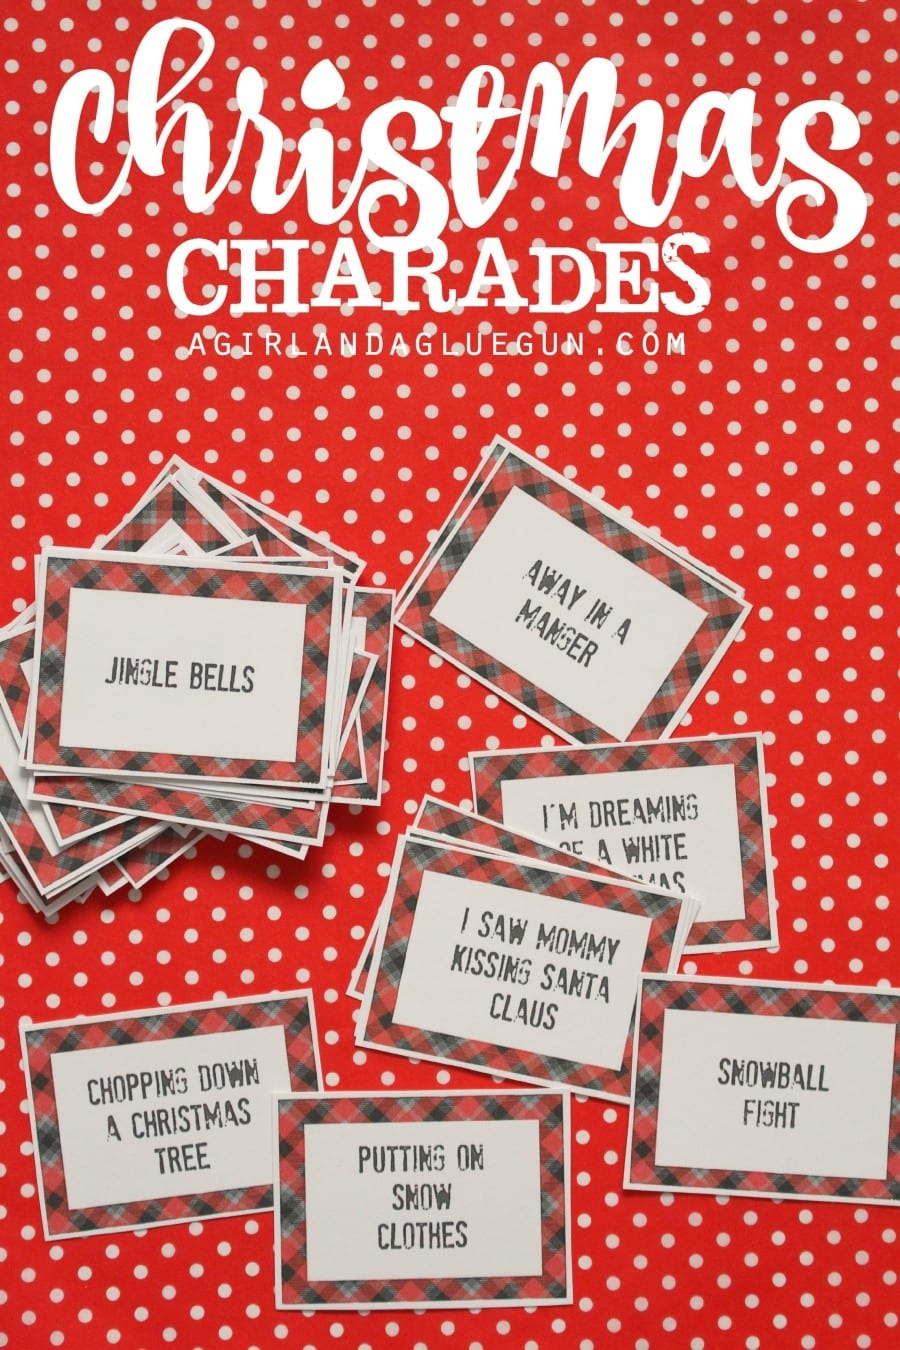 Christmas Charades Game And Free Printable Roundup! - A Girl And A - Christmas Song Lyrics Game Free Printable